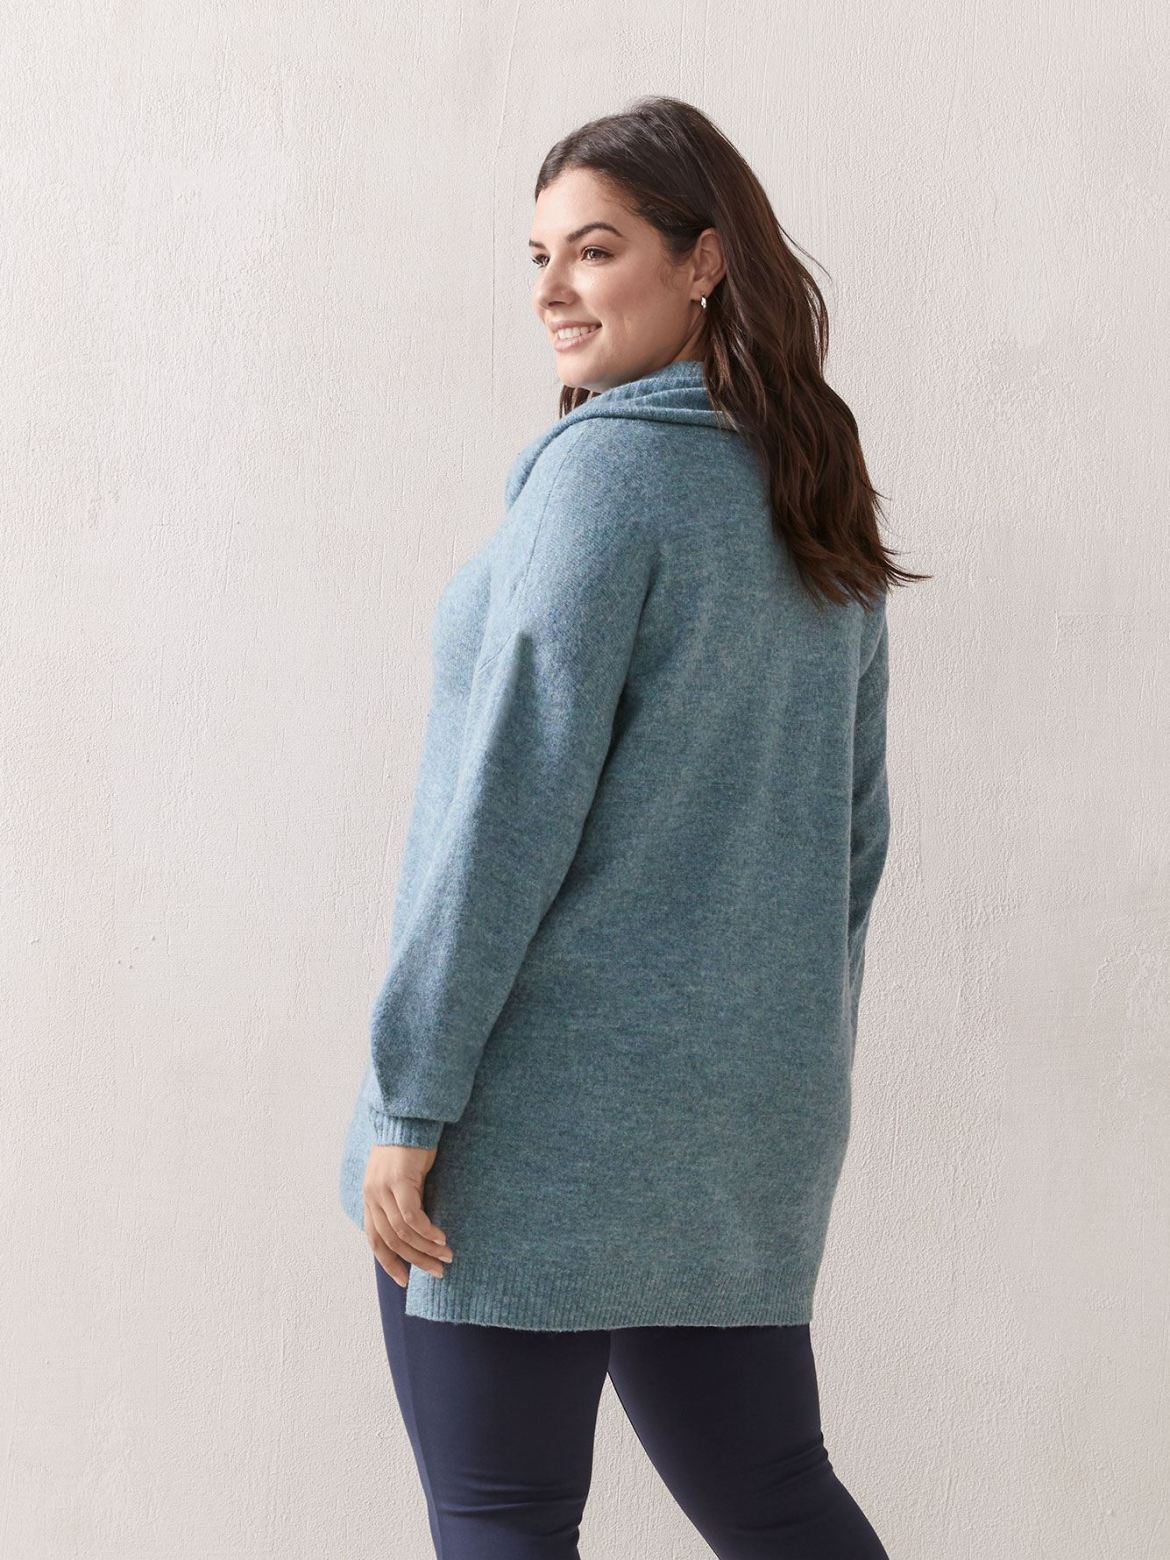 Long-Sleeve Sweater With Cowl Neck - In Every Story